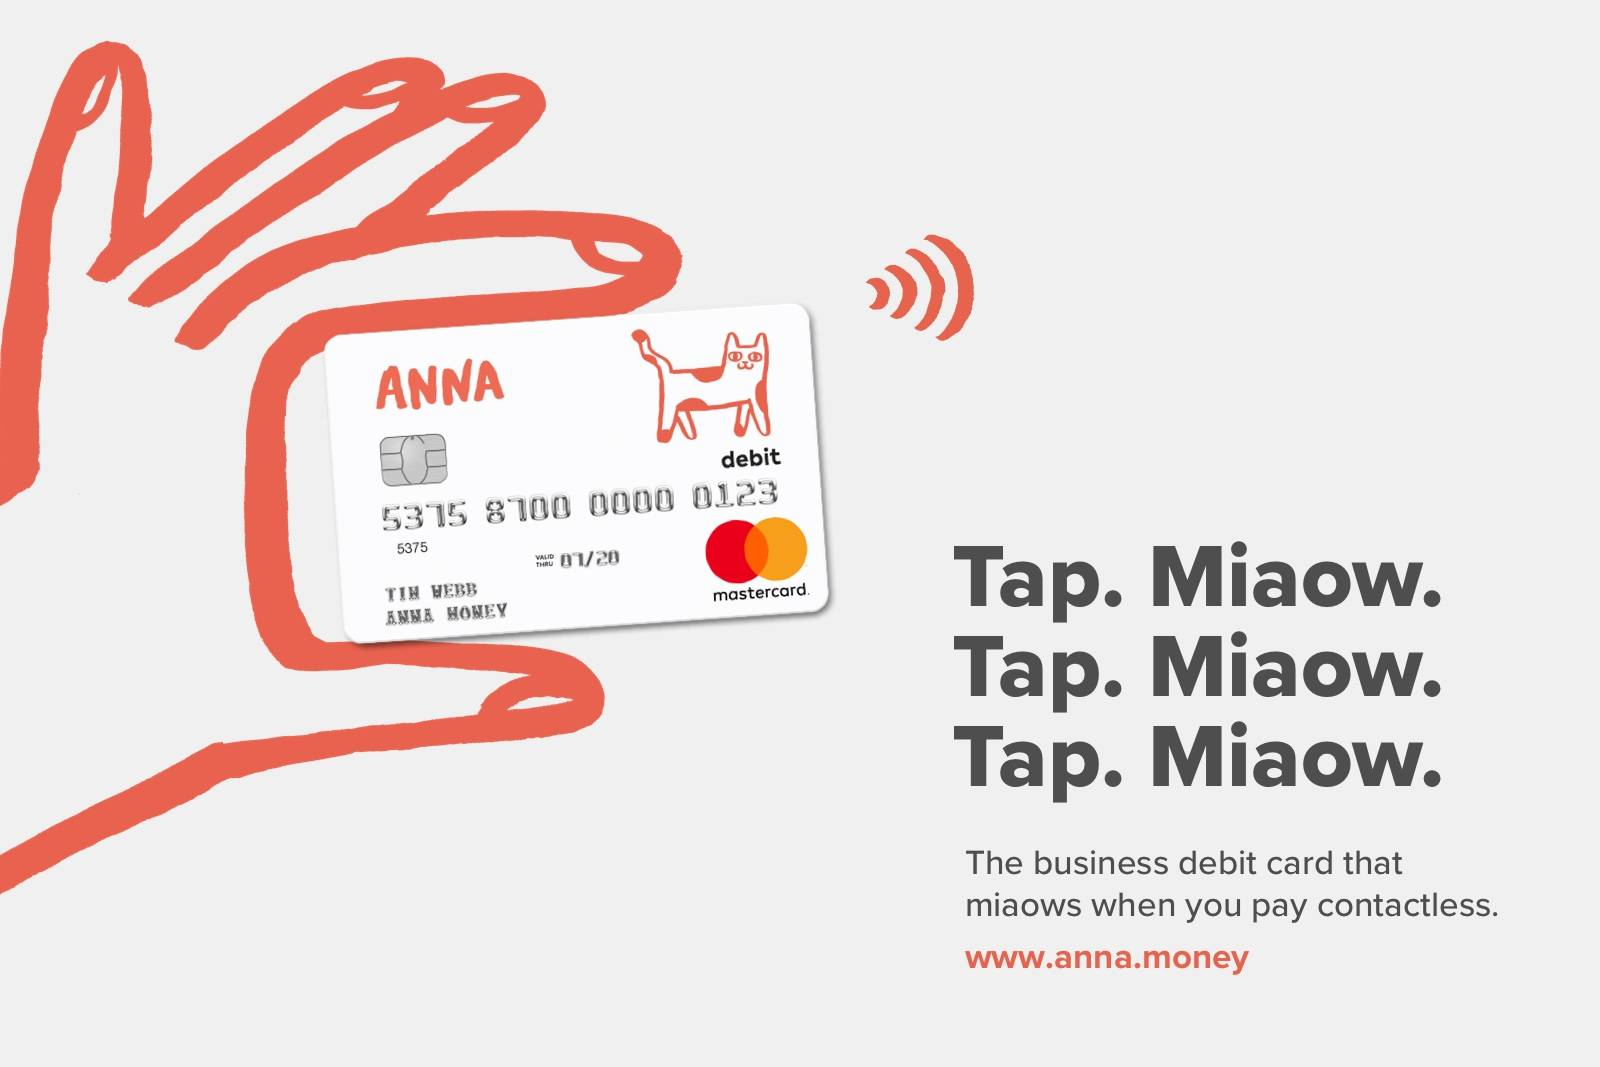 ANNA miaow debit card